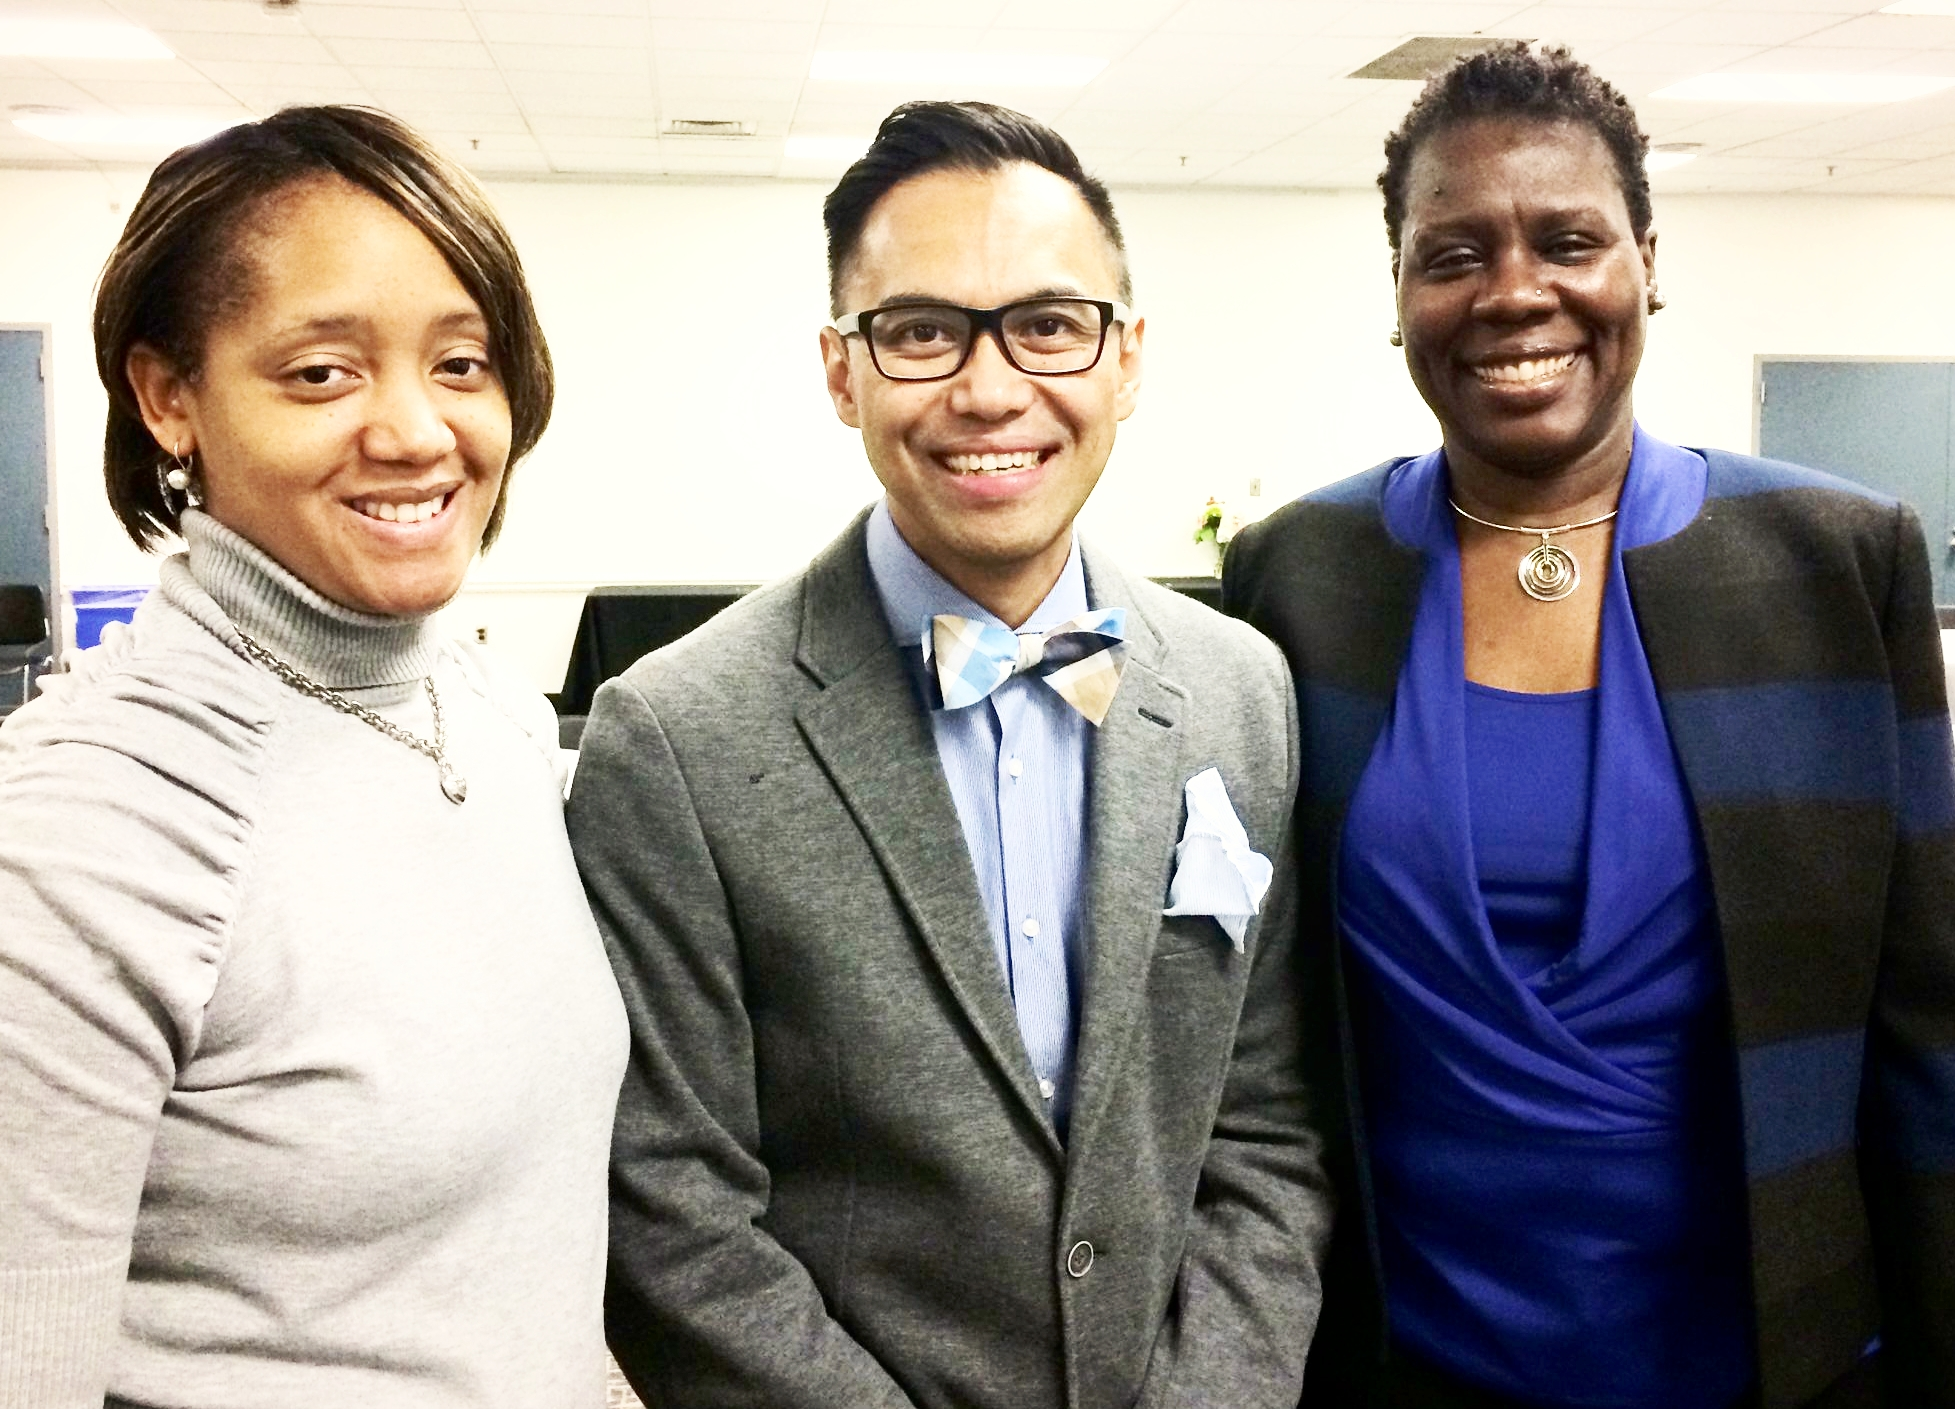 L to R: Dana Perry, Alden E. Habacon, Dr. Carol Henderson, Vice Provost for Diversity